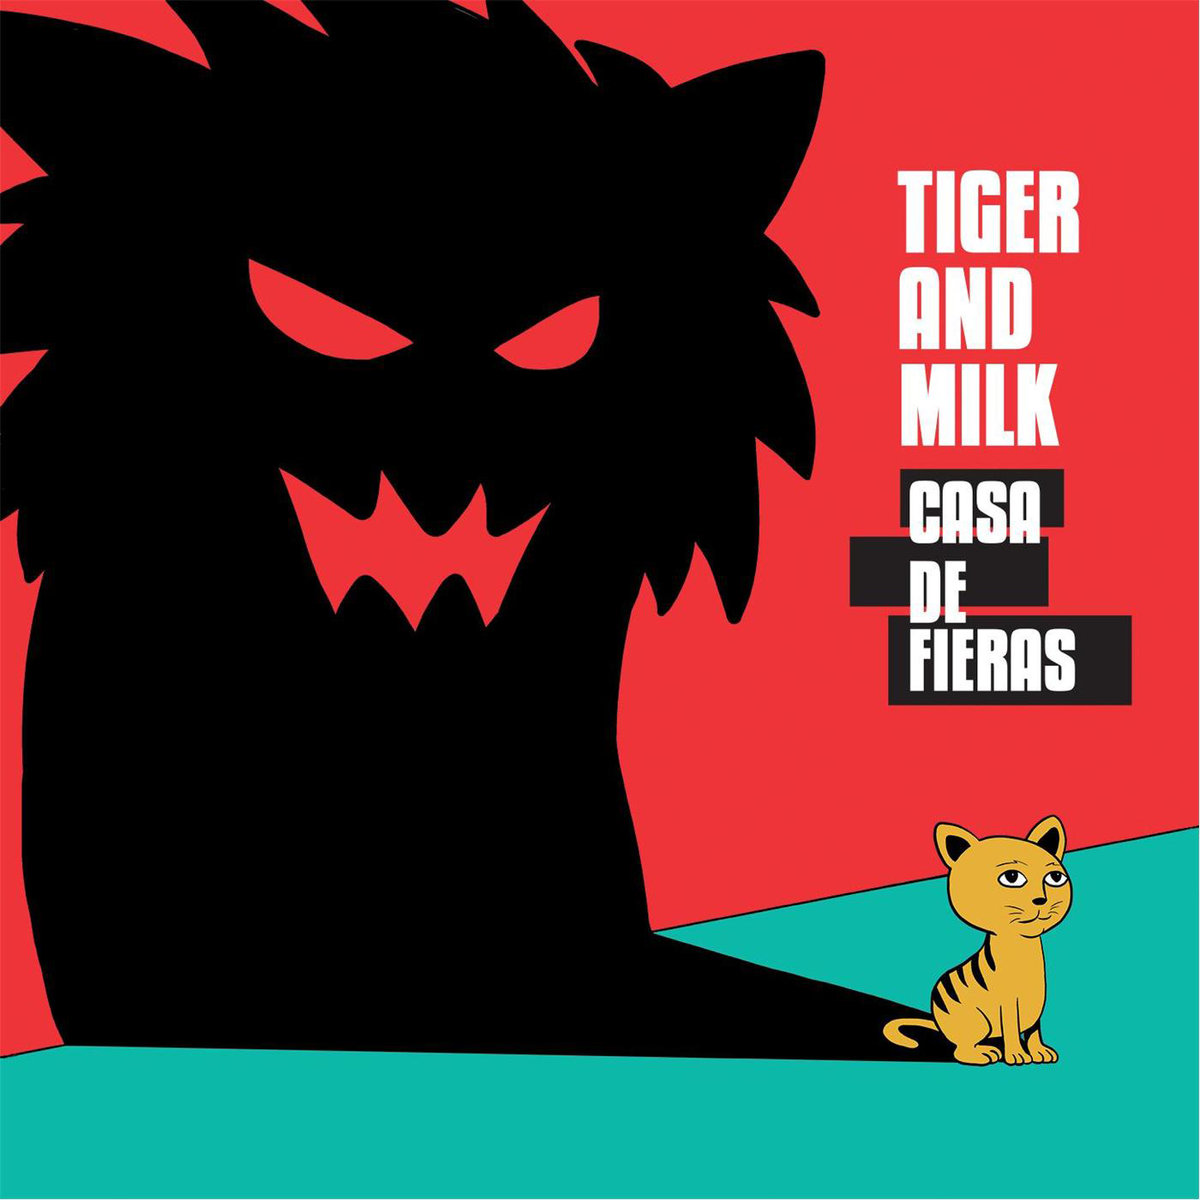 Tiger and Milk